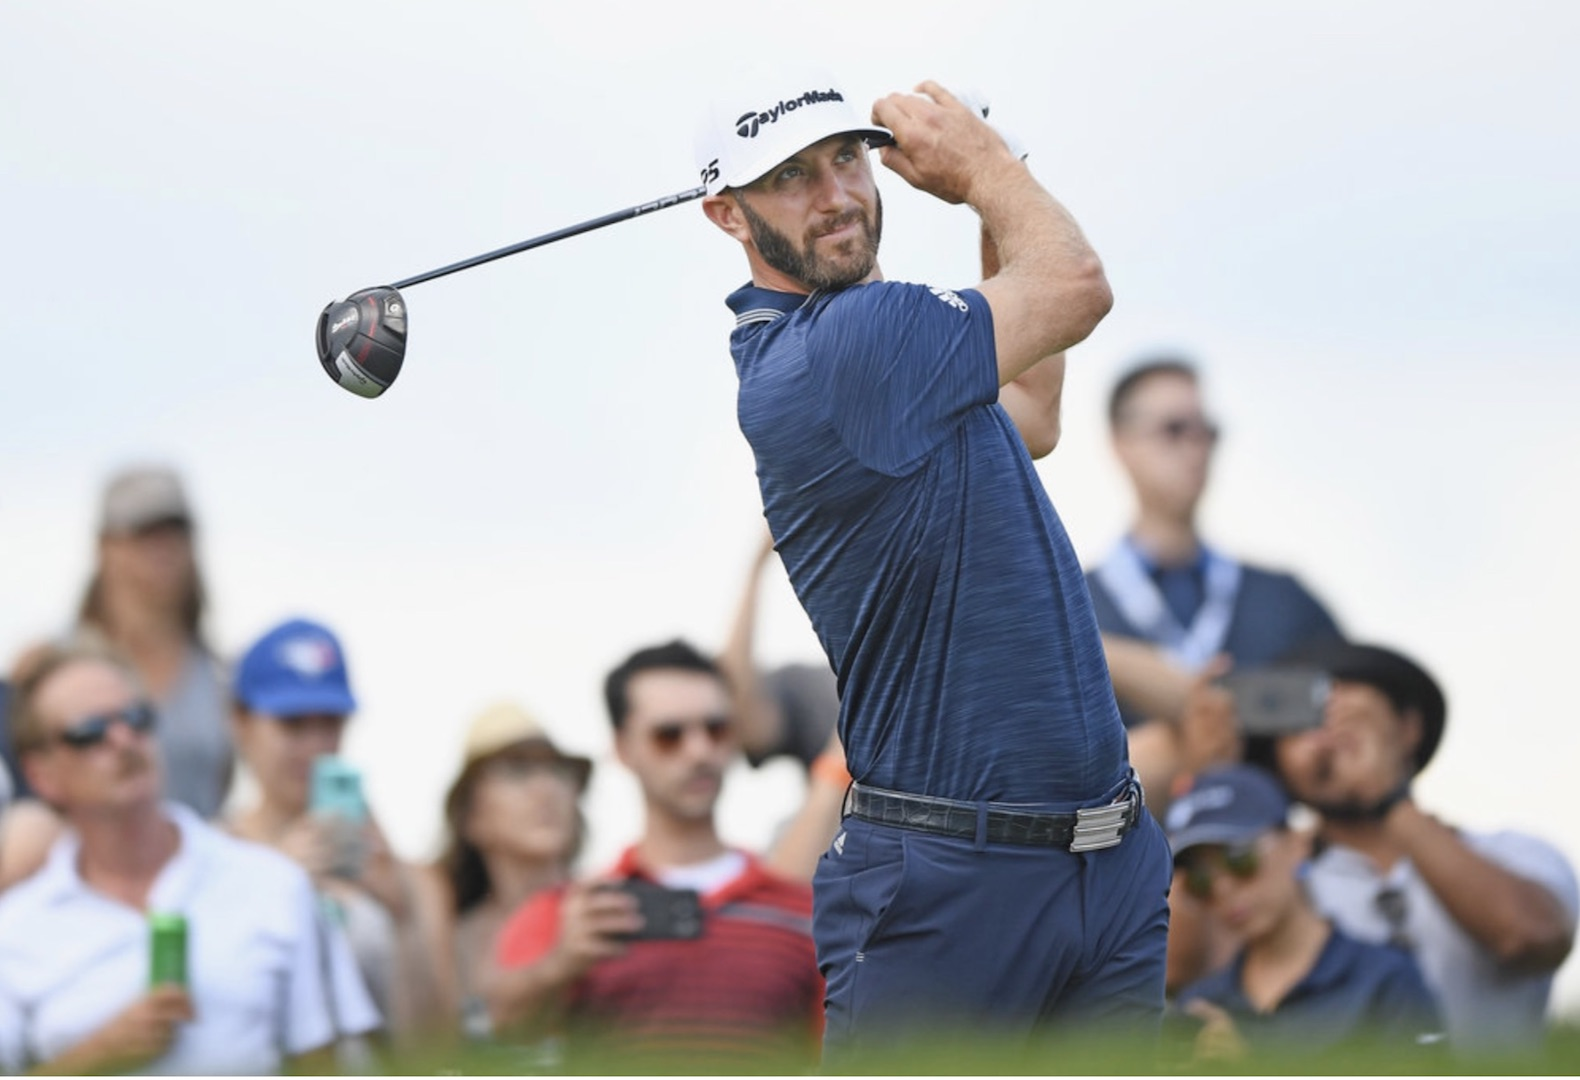 Dustin Johnson Wins RBC Canadian Open